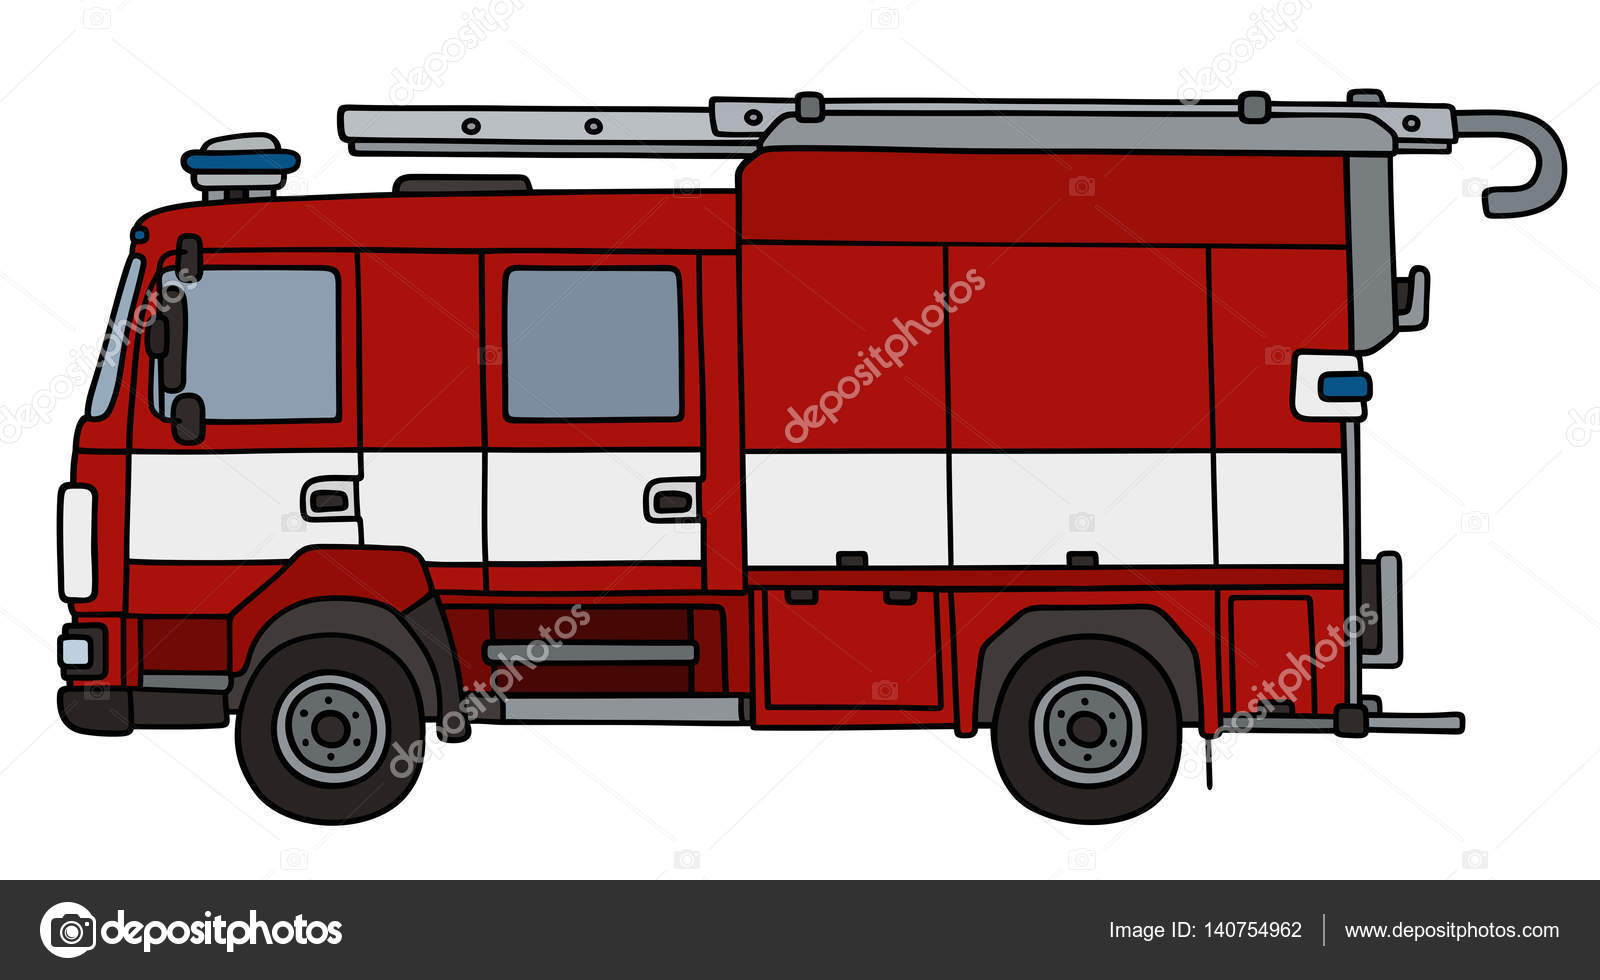 1600x980 Red Fire Truck Stock Vector 2v